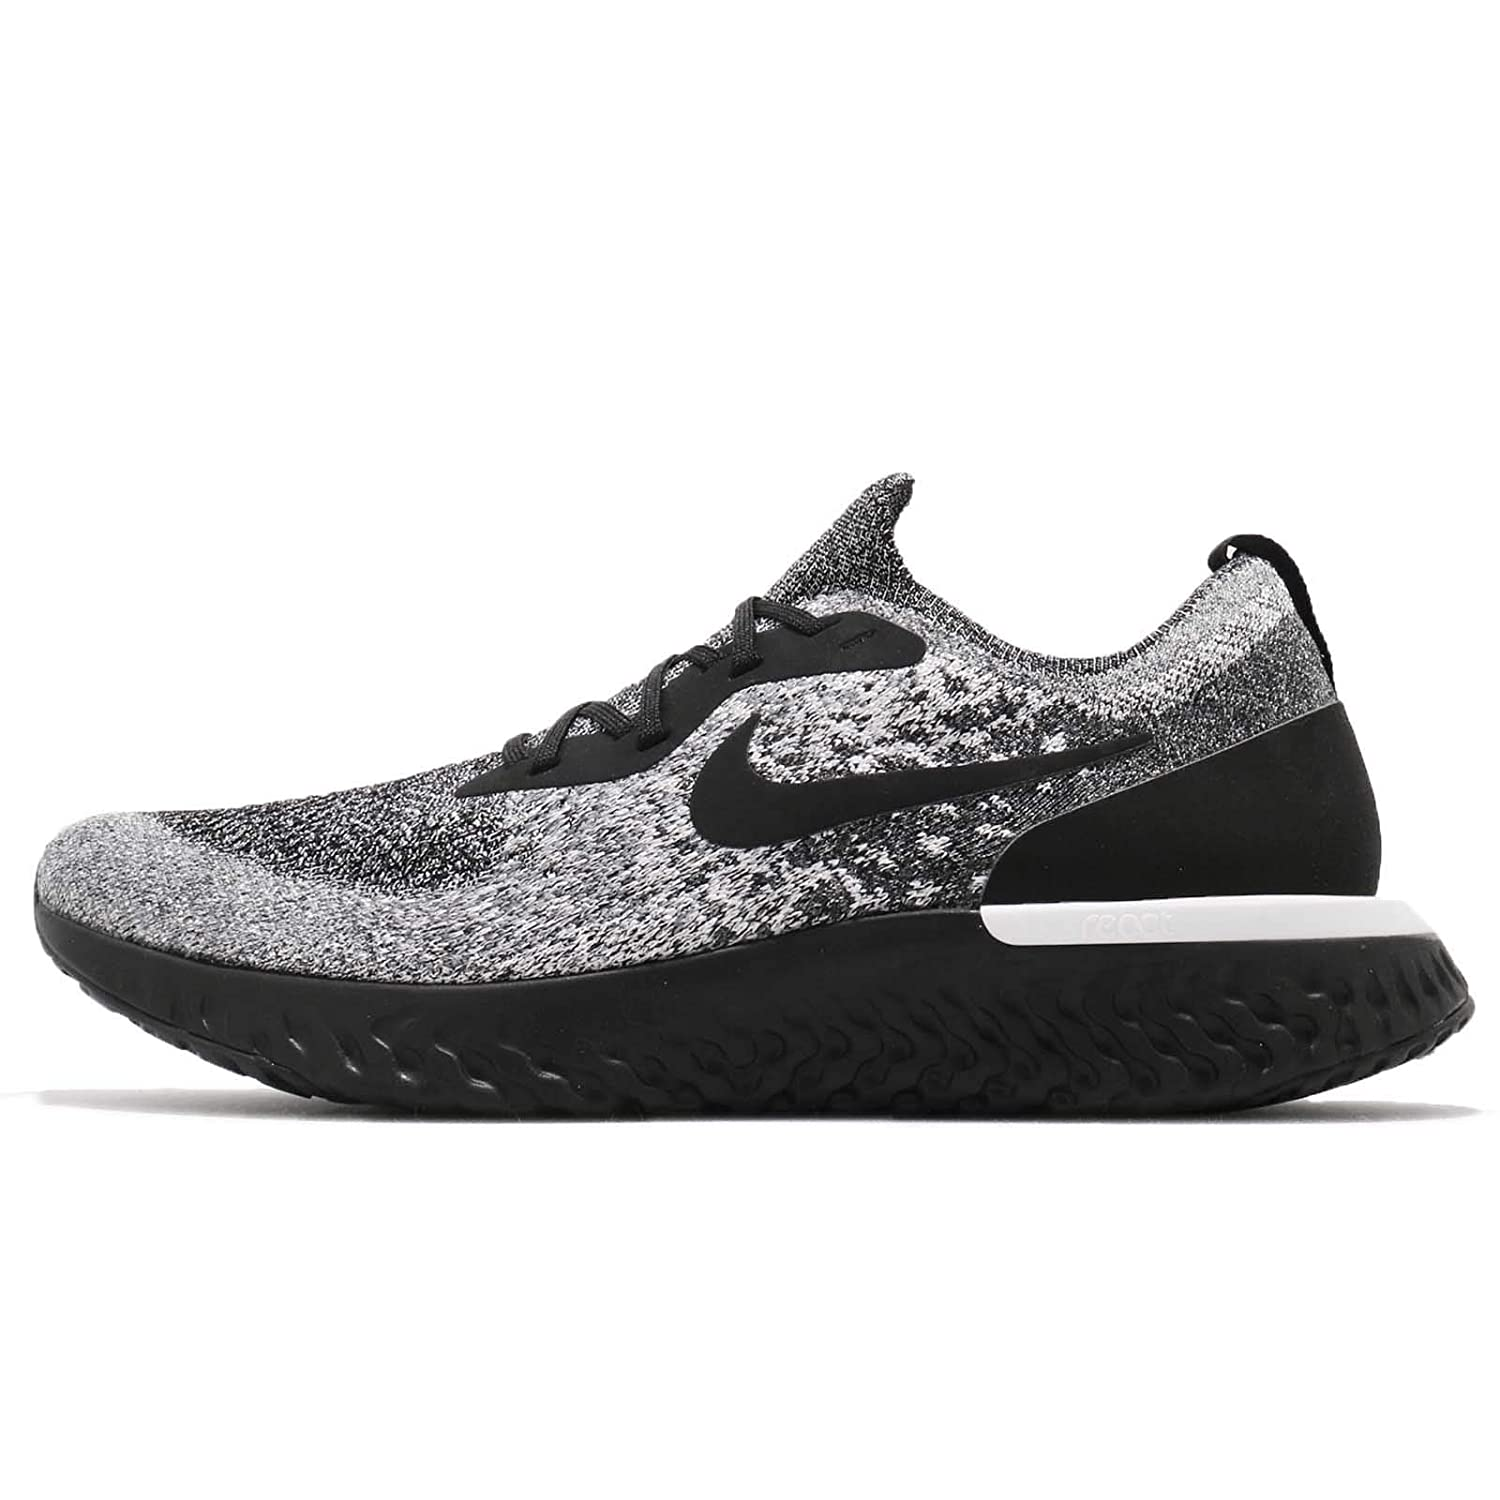 hot sale online 1d06f 3d3be Nike Mens Epic React Flyknit Running Shoes Black/Black/White 12